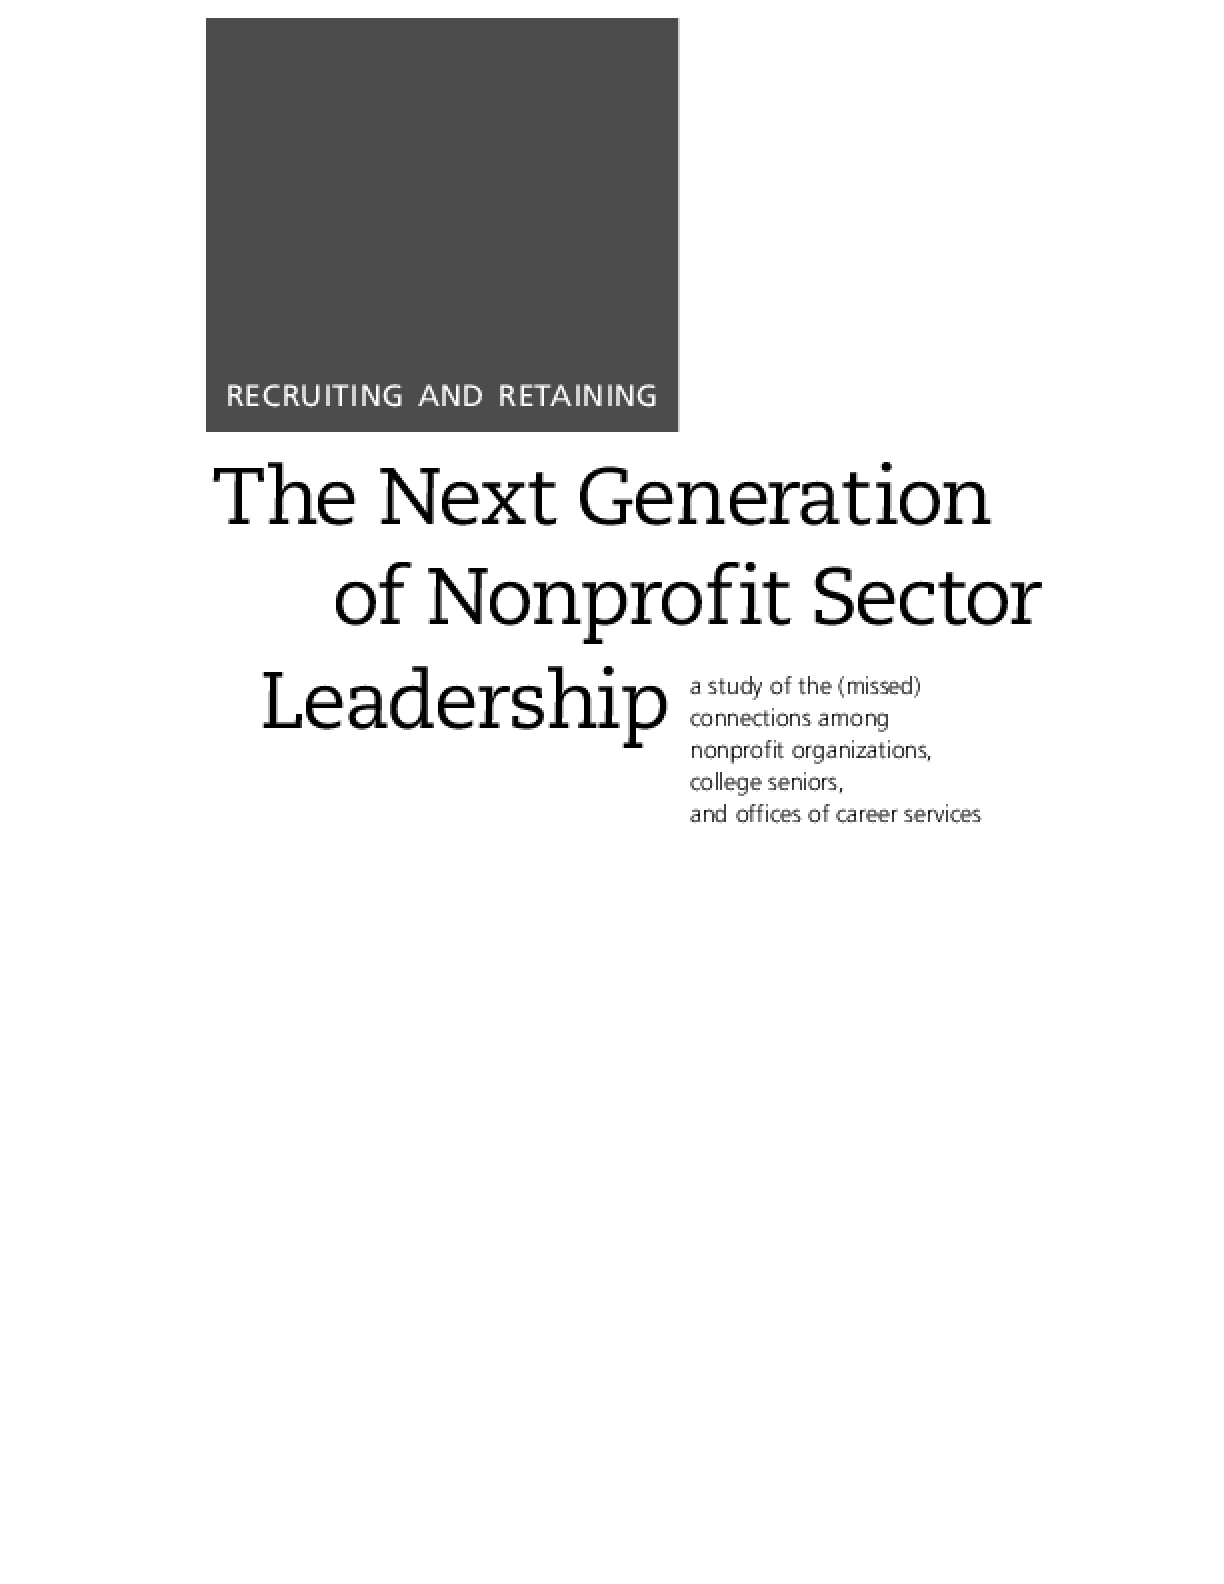 Recruiting and Retaining the Next Generation of Nonprofit Sector Leadership